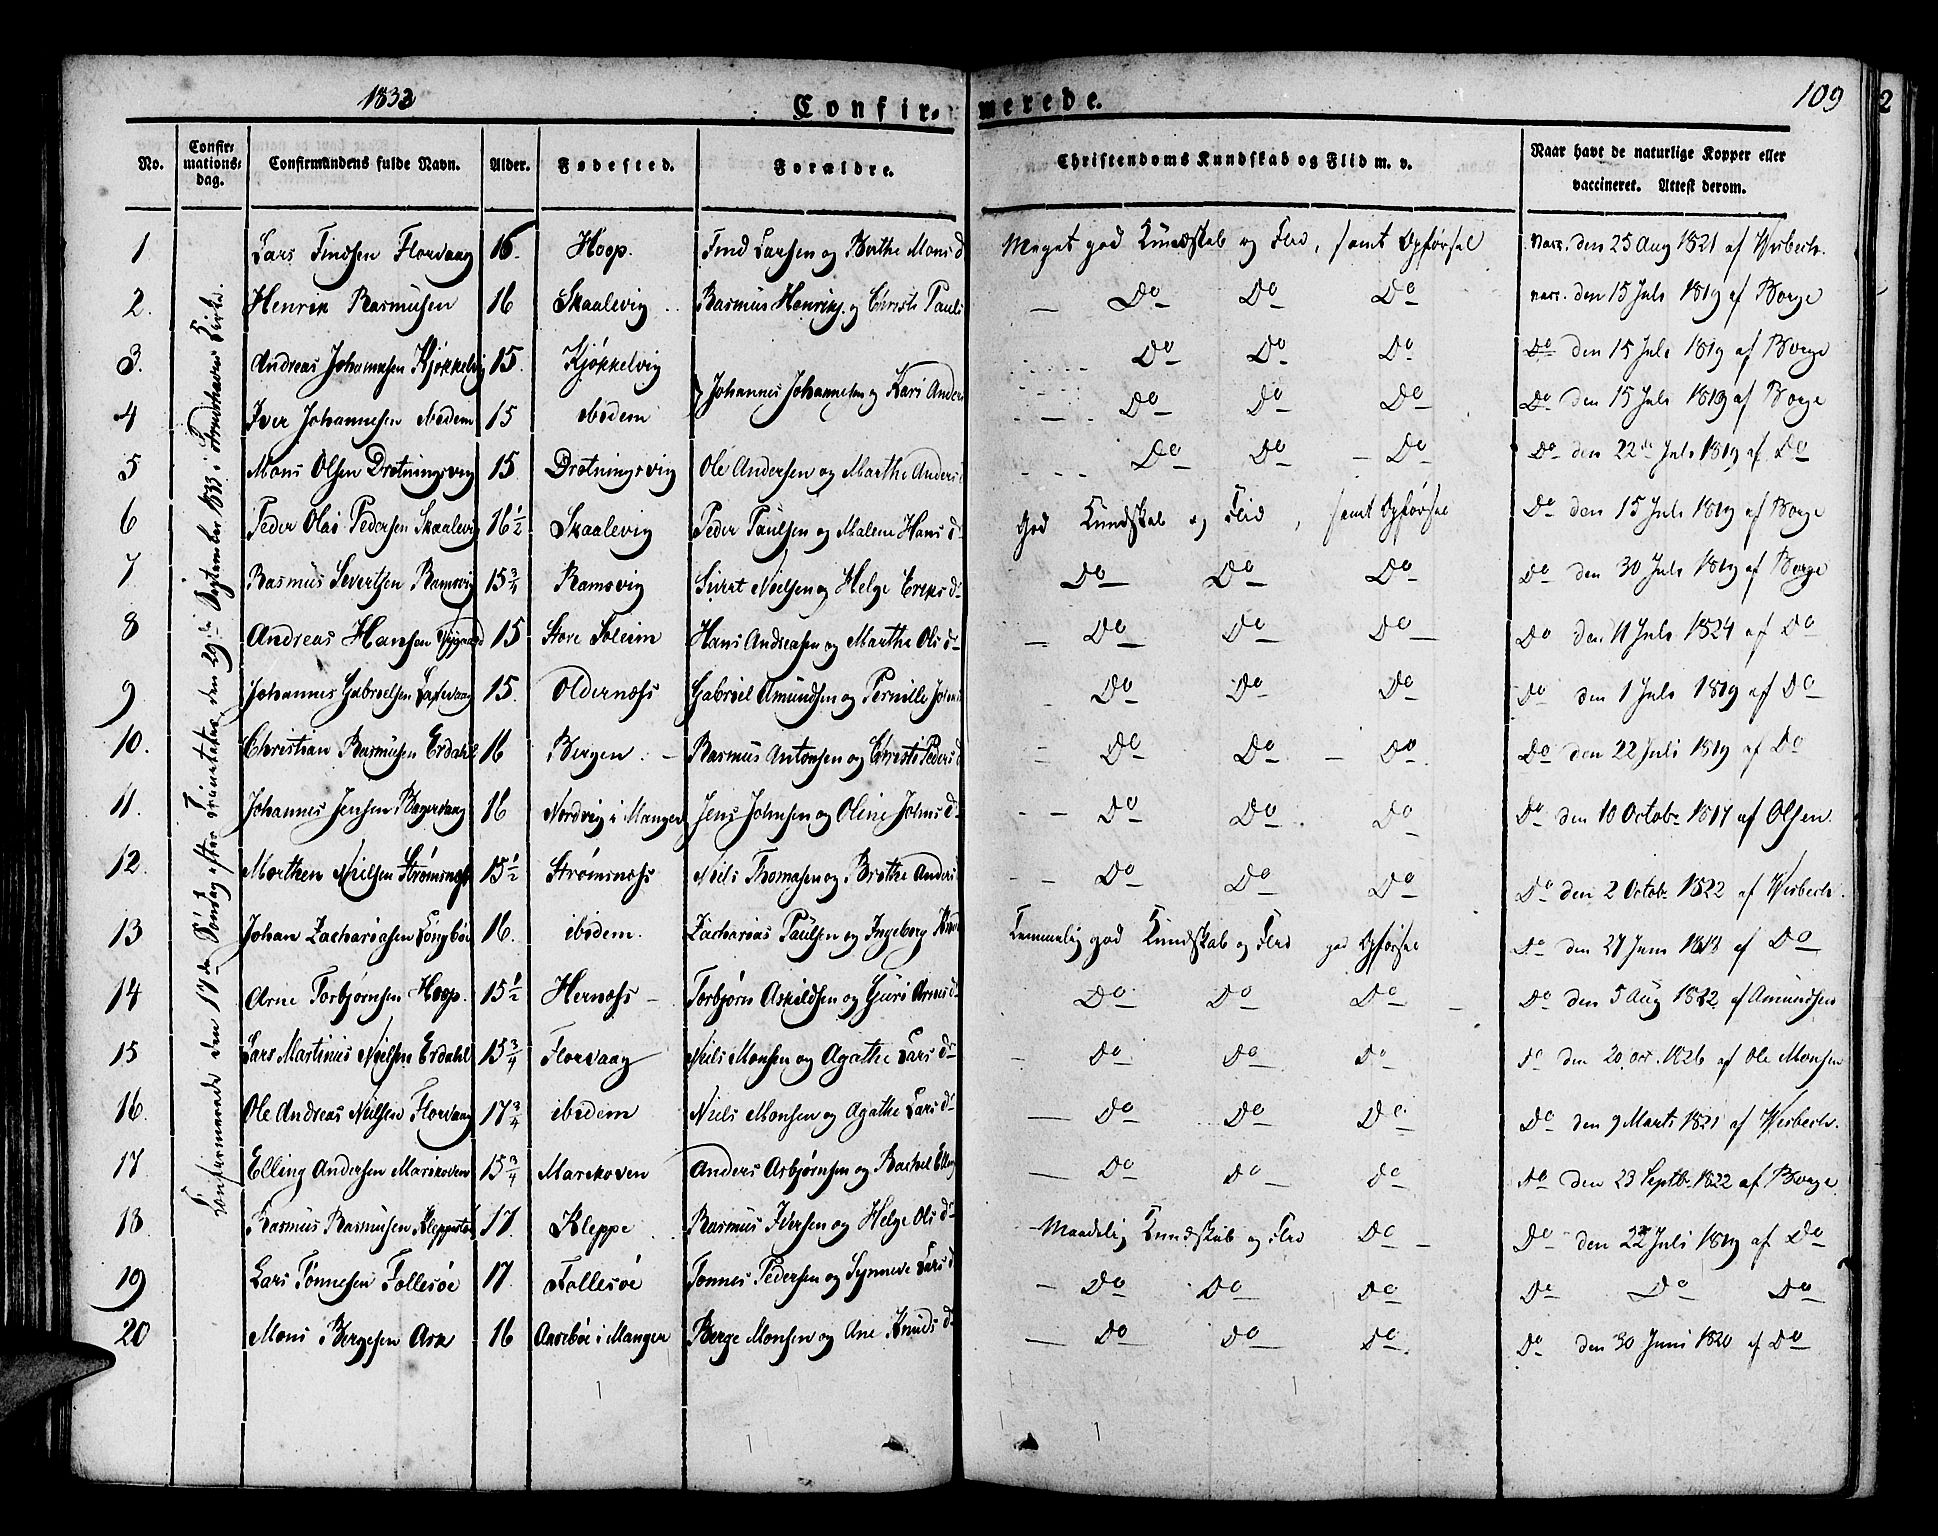 SAB, Askøy Sokneprestembete, H/Ha/Haa/Haaa/L0004: Parish register (official) no. A 4, 1825-1845, p. 109